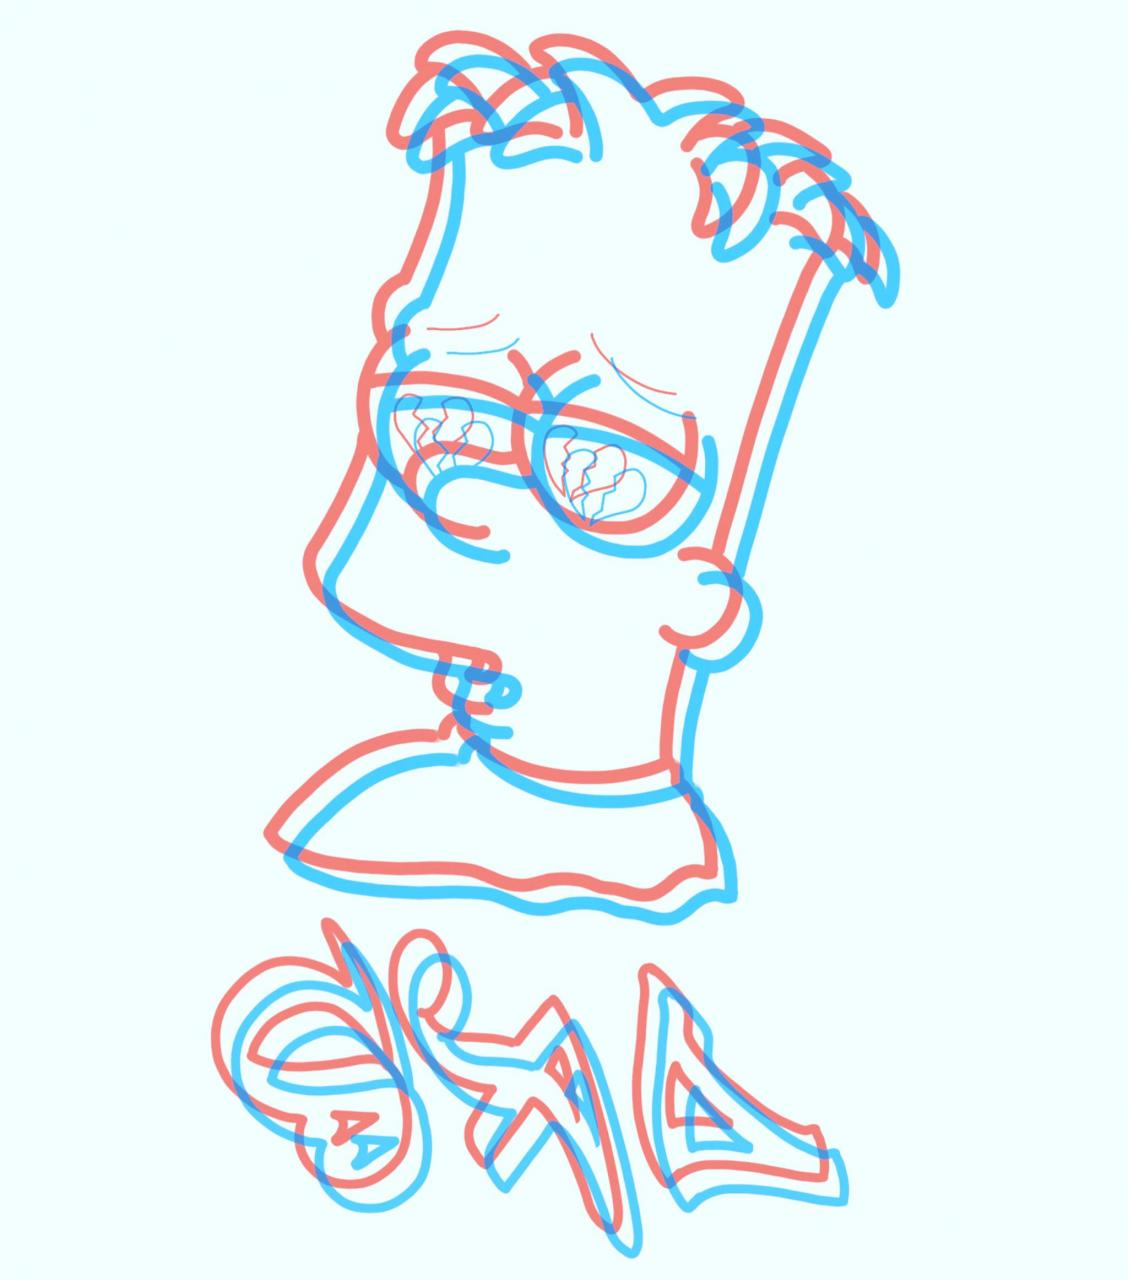 Just doodling on procreate. I think I'm going to do a whole retro 3-D Simpson's flash sheet soon.